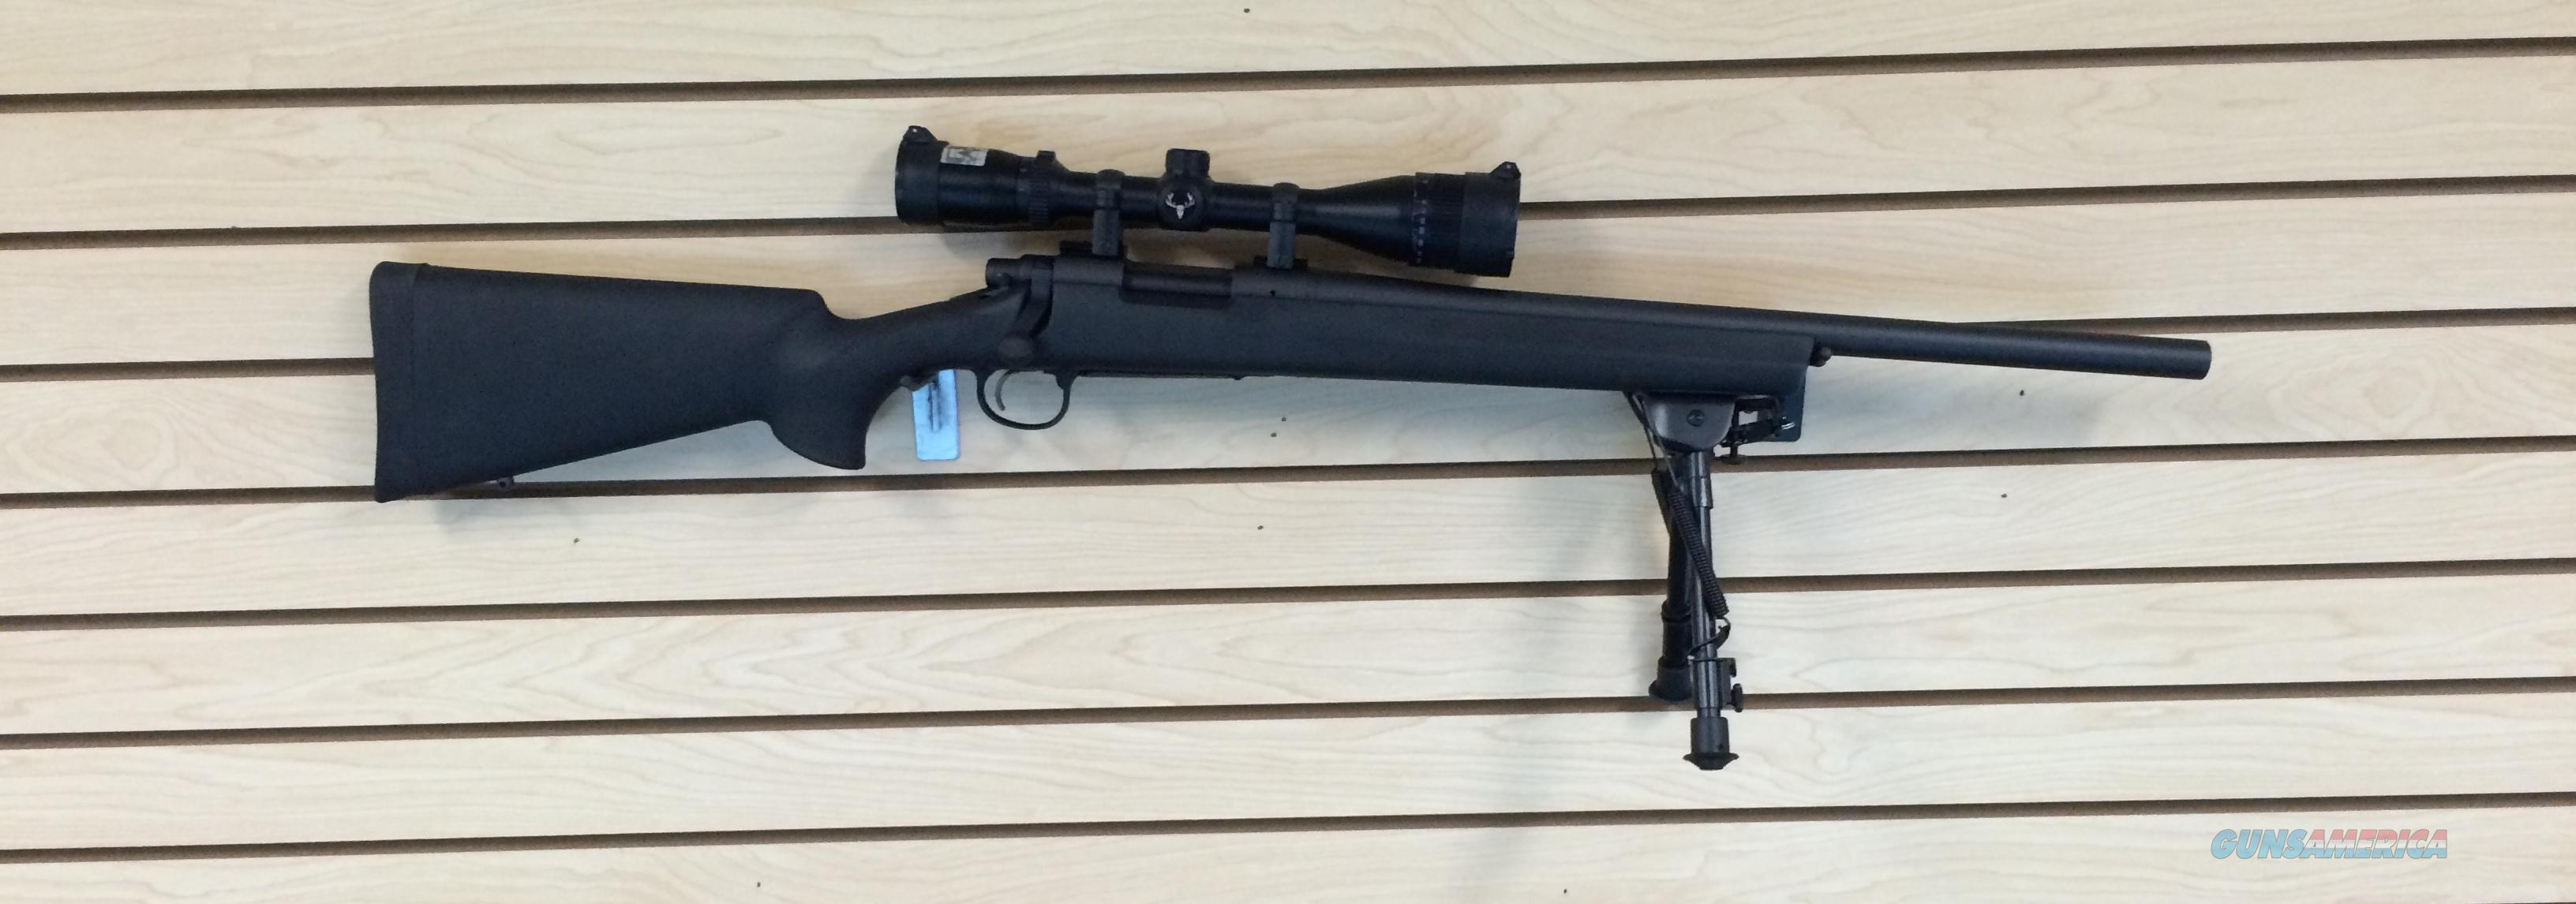 USED REMINGTON 700 TACTICAL 308W SCOPE BIPOD FREE SHIPPING!   Guns > Rifles > Remington Rifles - Modern > Model 700 > Tactical